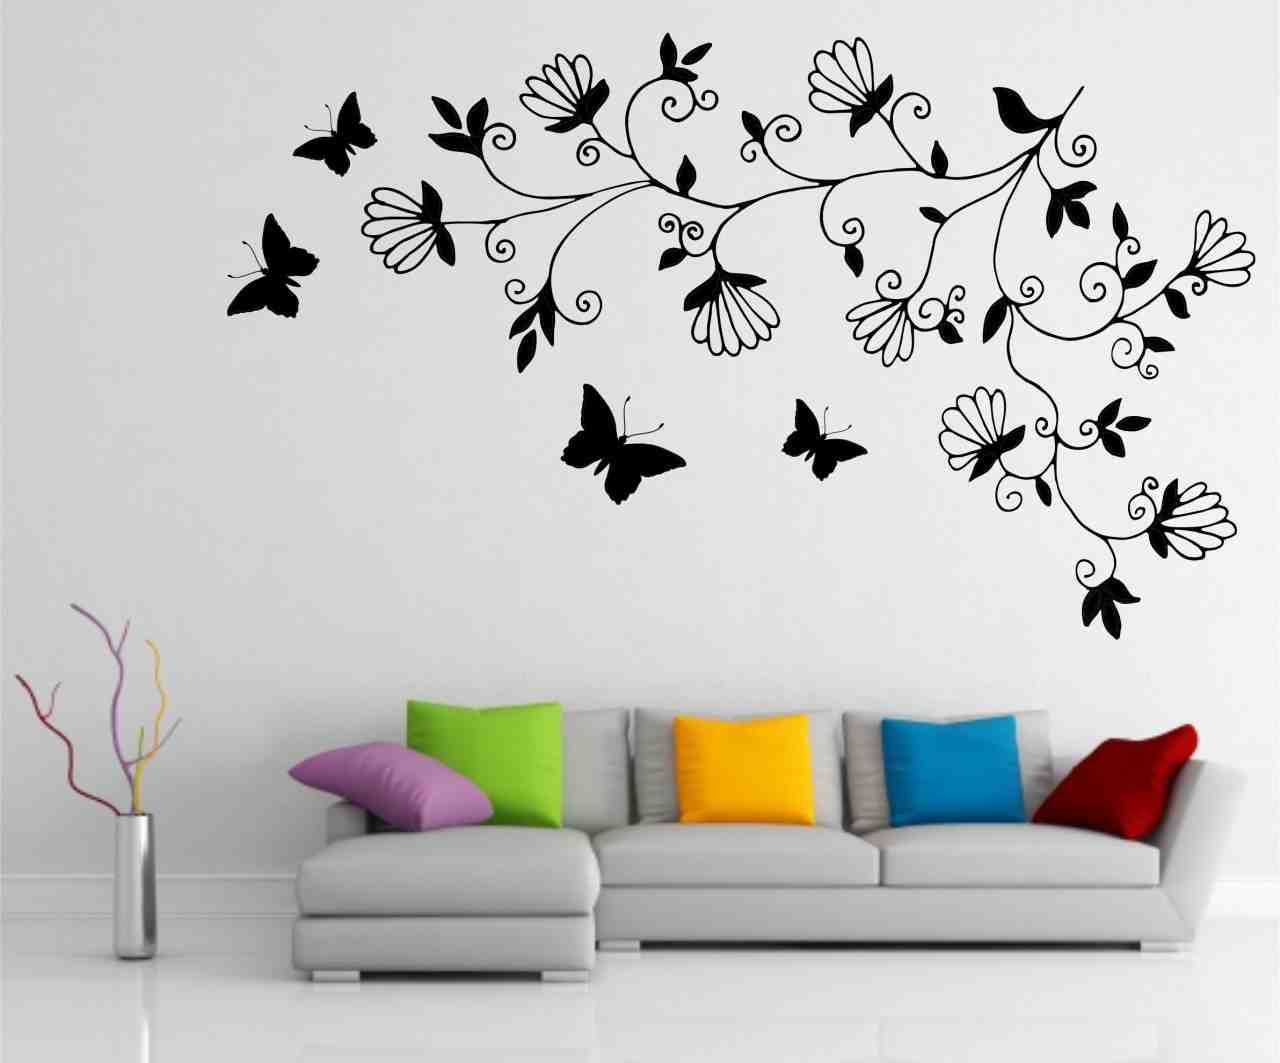 Wall Paintings For Living Room Simple Wall Paintings Simple Wall Art Wall Paint Designs